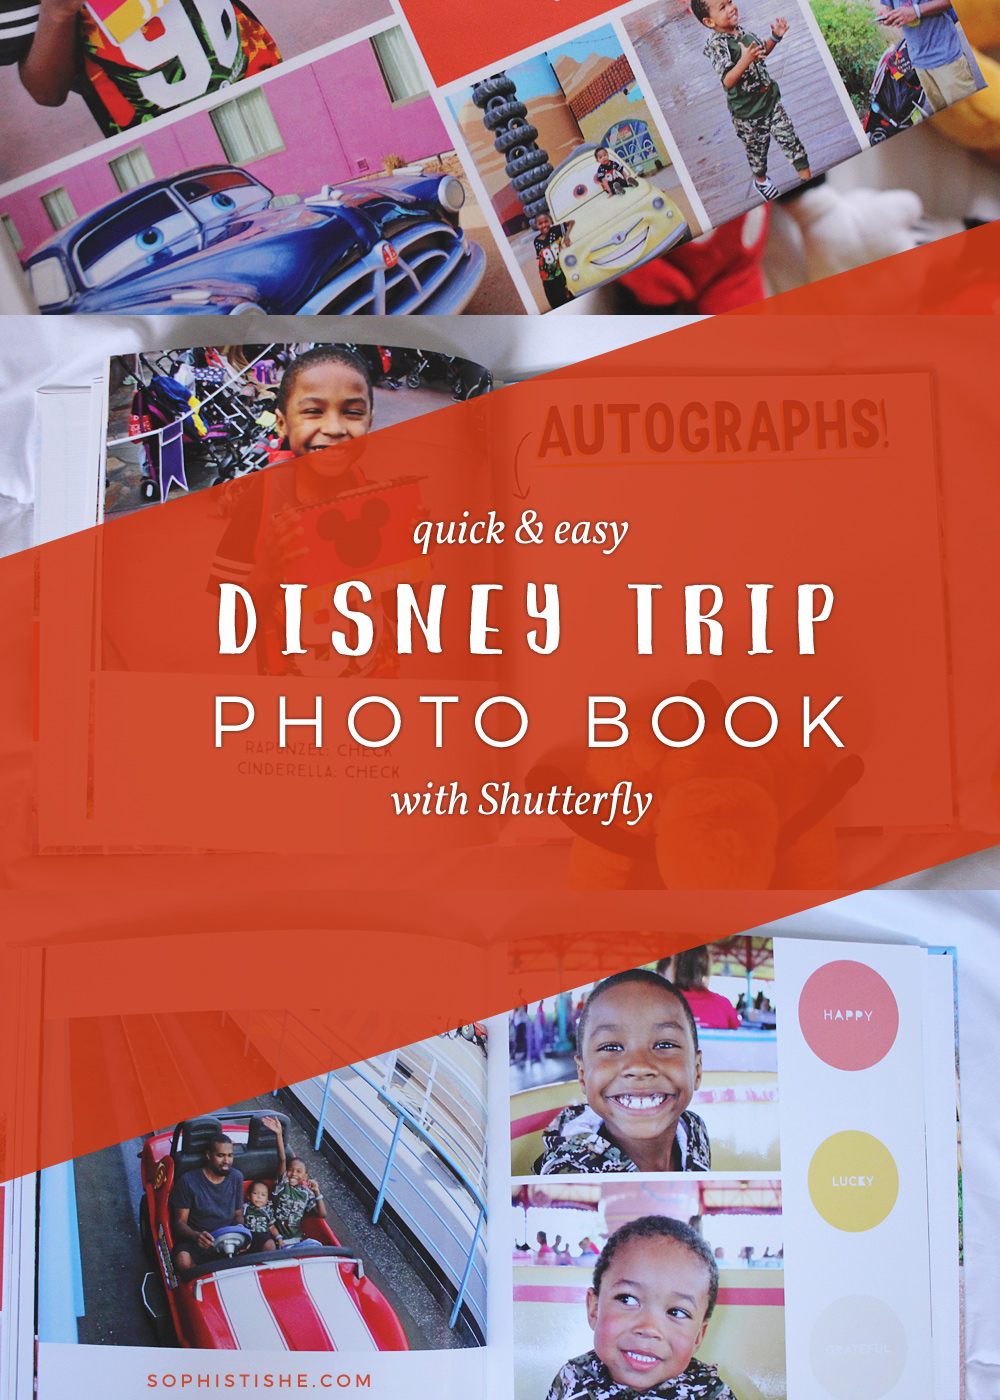 Quick & easy Disney trip photo book with Shutterfly!